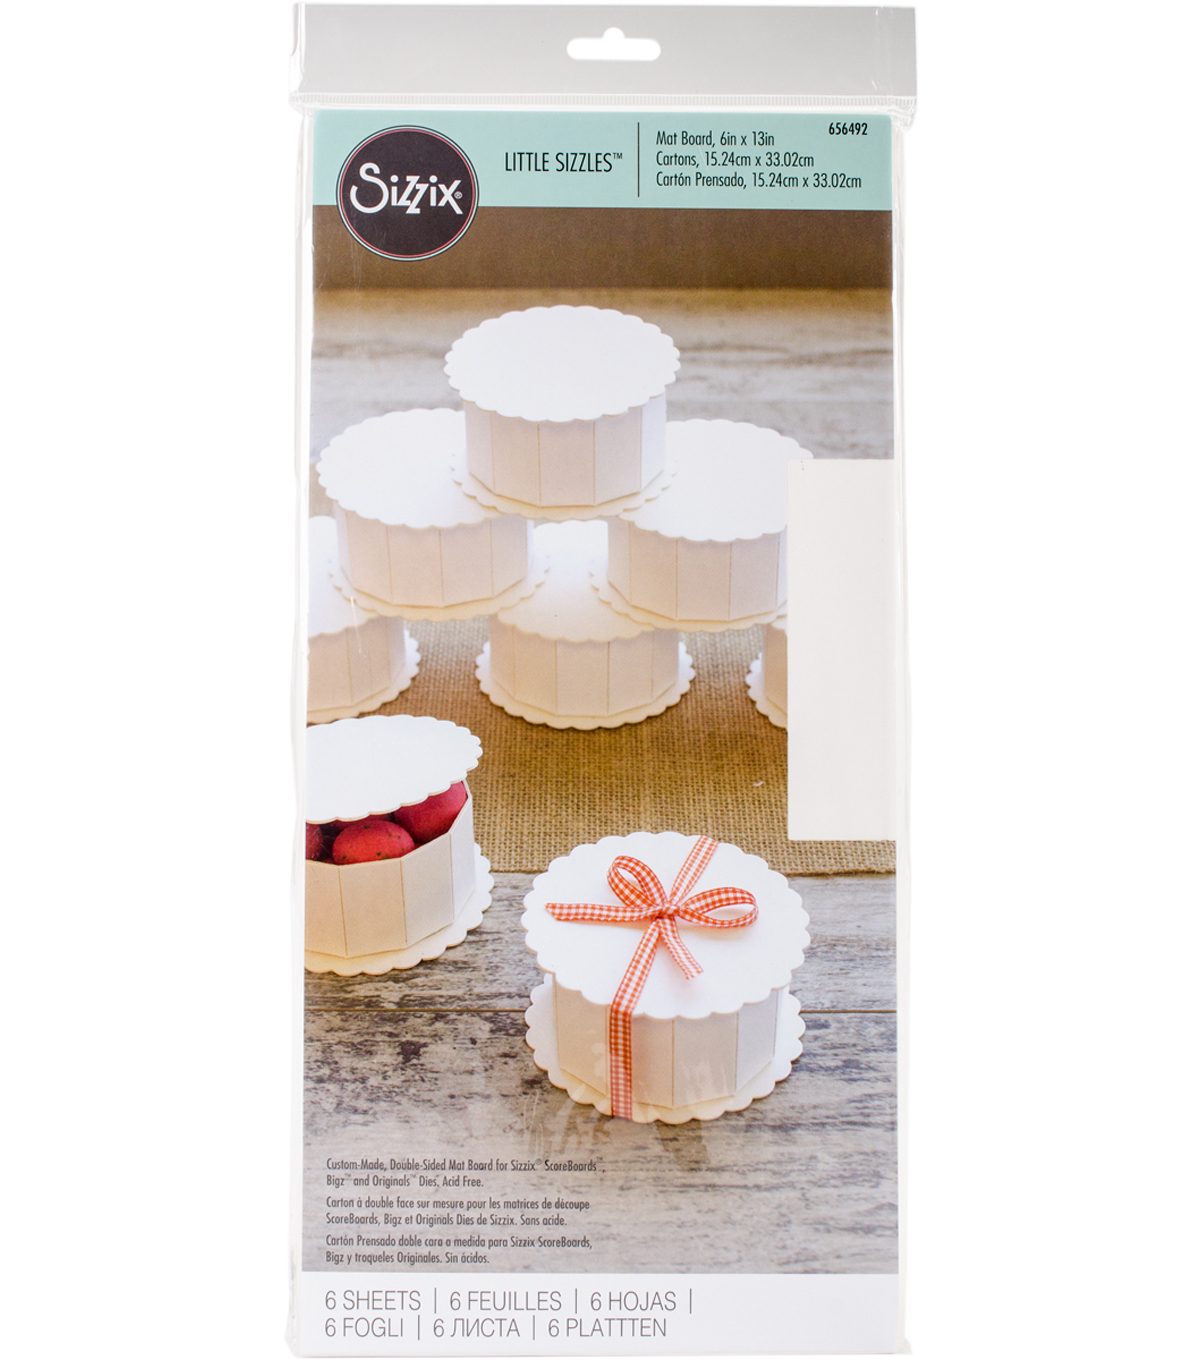 Sizzix Little Sizzles 6 Pack 6\u0027\u0027x13\u0027\u0027 Mat Board-White